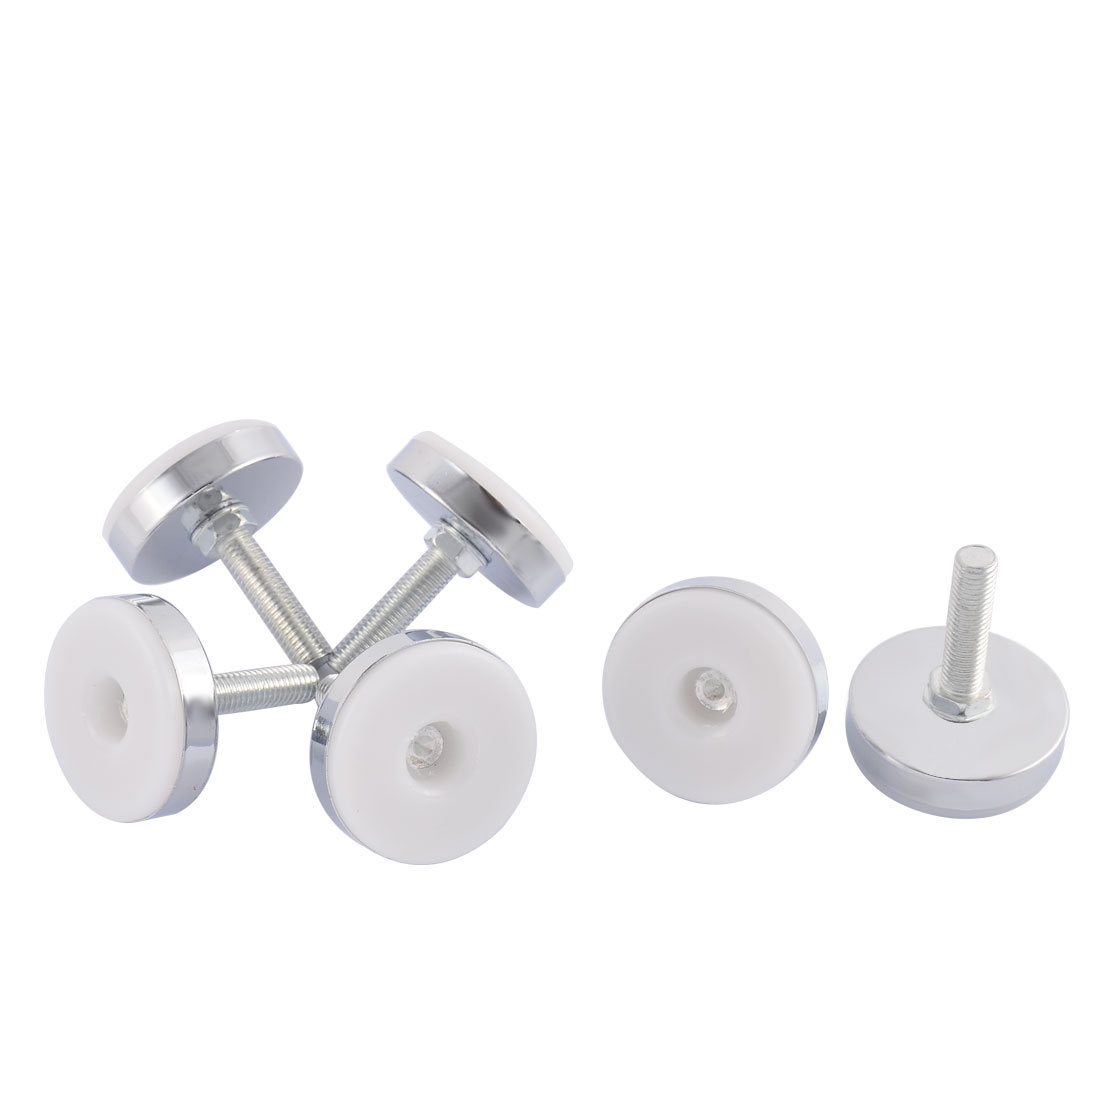 Home Office Adjustable Furniture Glide Leveling Feet 10mm Thread Dia 6 Pcs